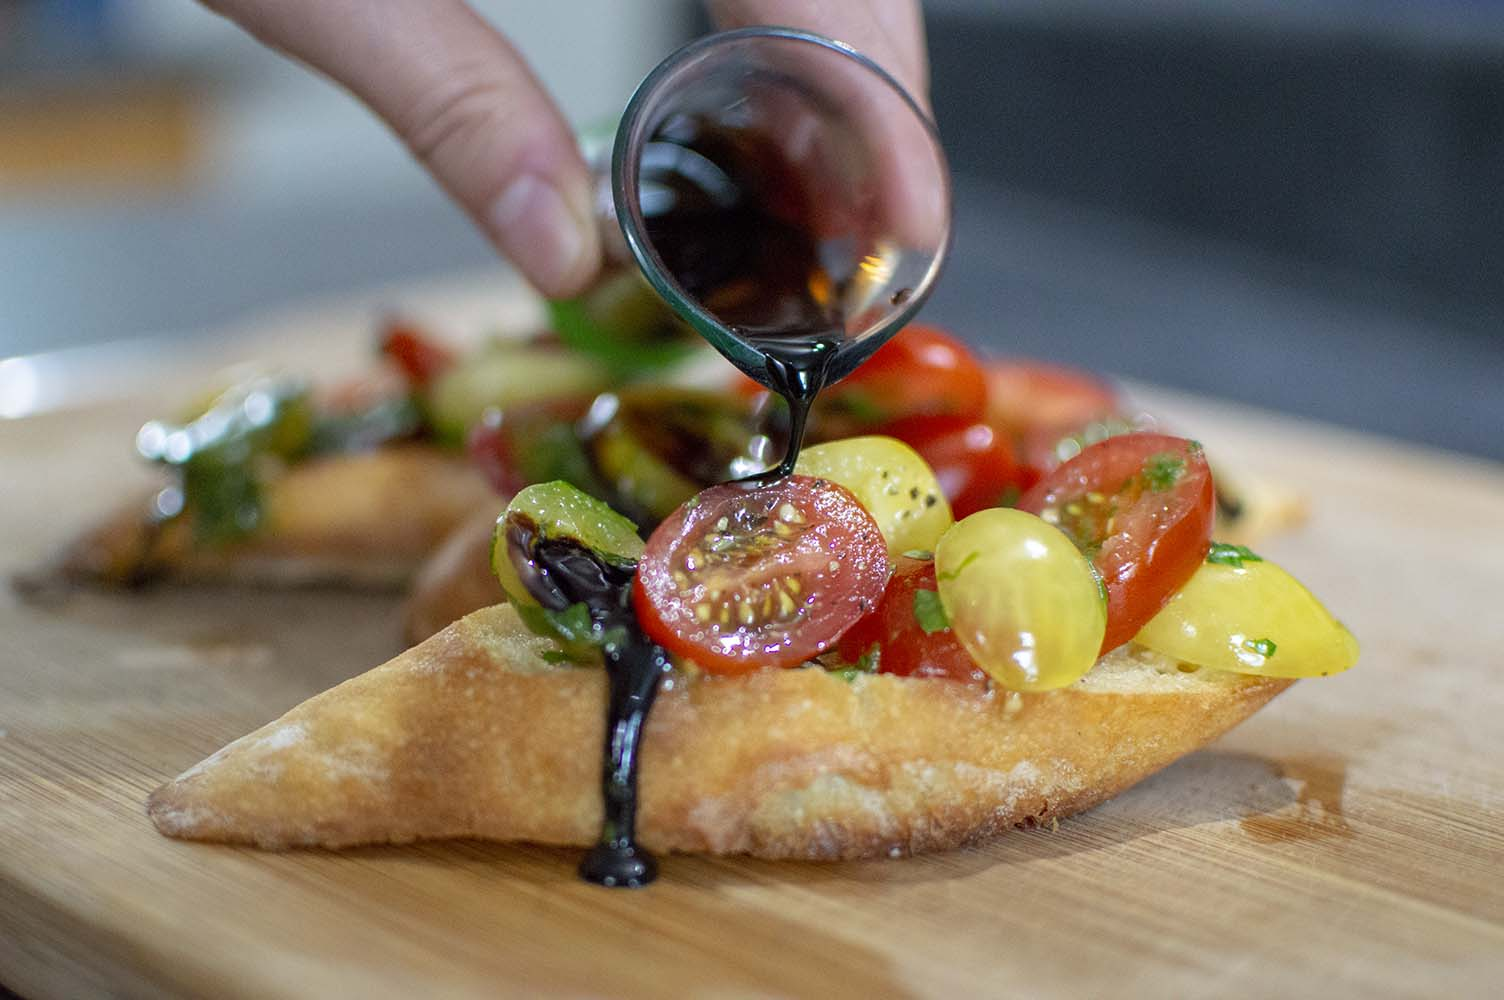 Topping the Tomato Brushetta with balsamic reduction